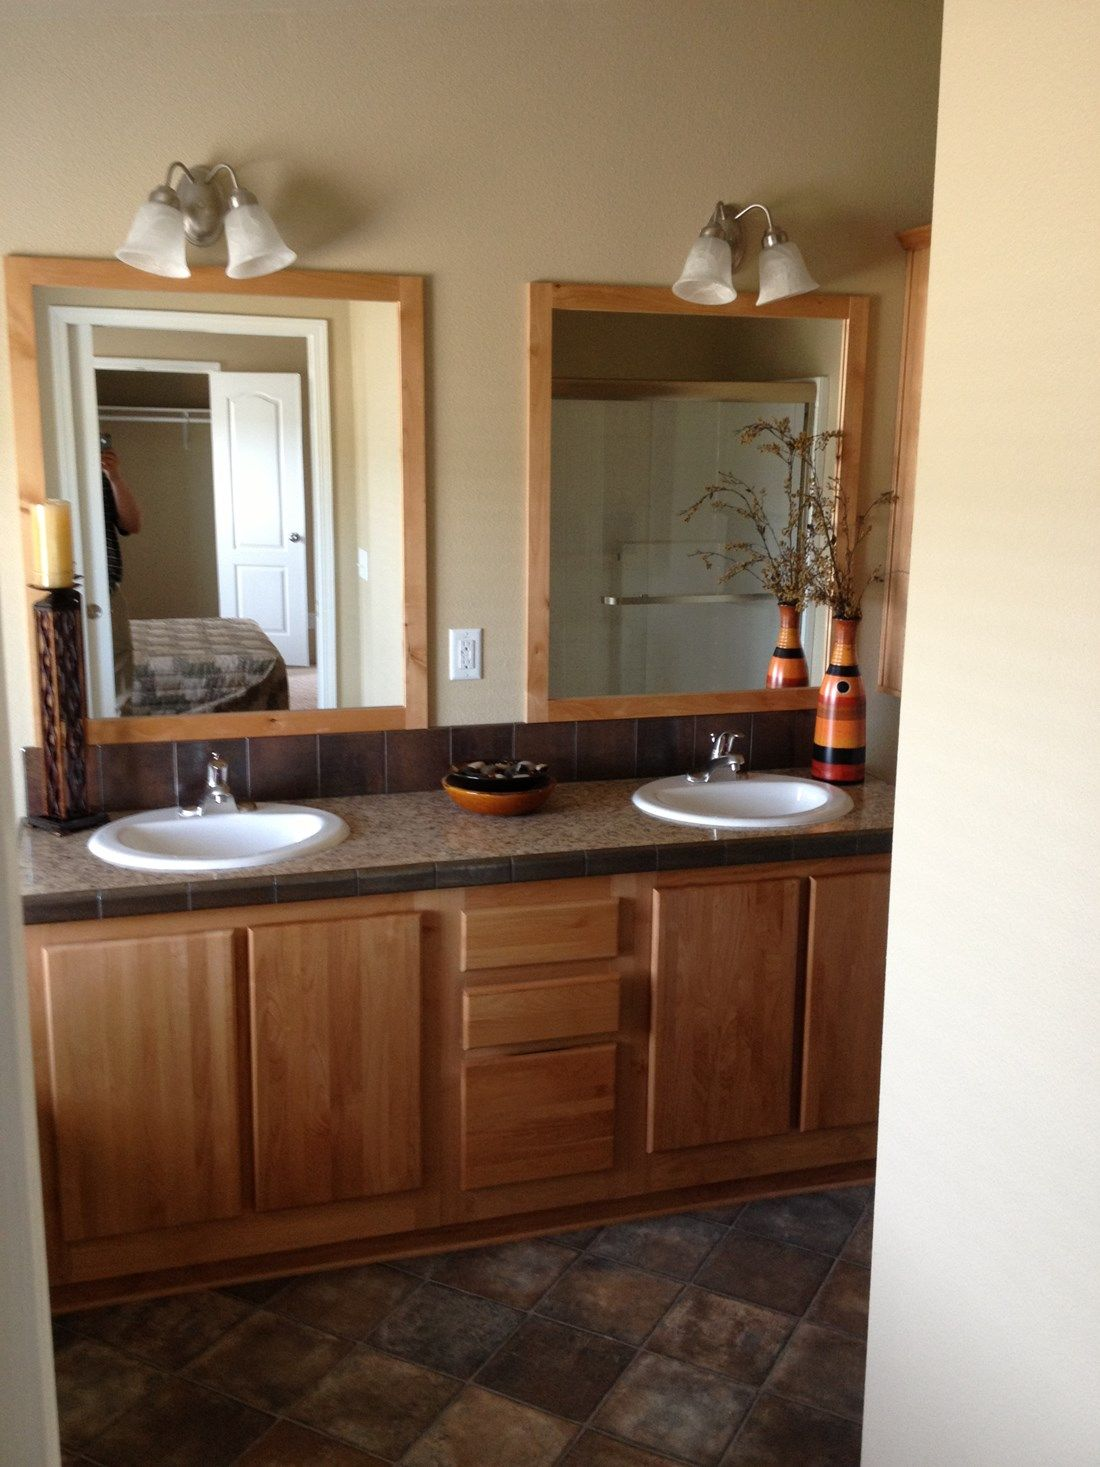 The 2848 MARLETTE SPECIAL Master Bathroom. This Manufactured Mobile Home features 3 bedrooms and 2 baths.